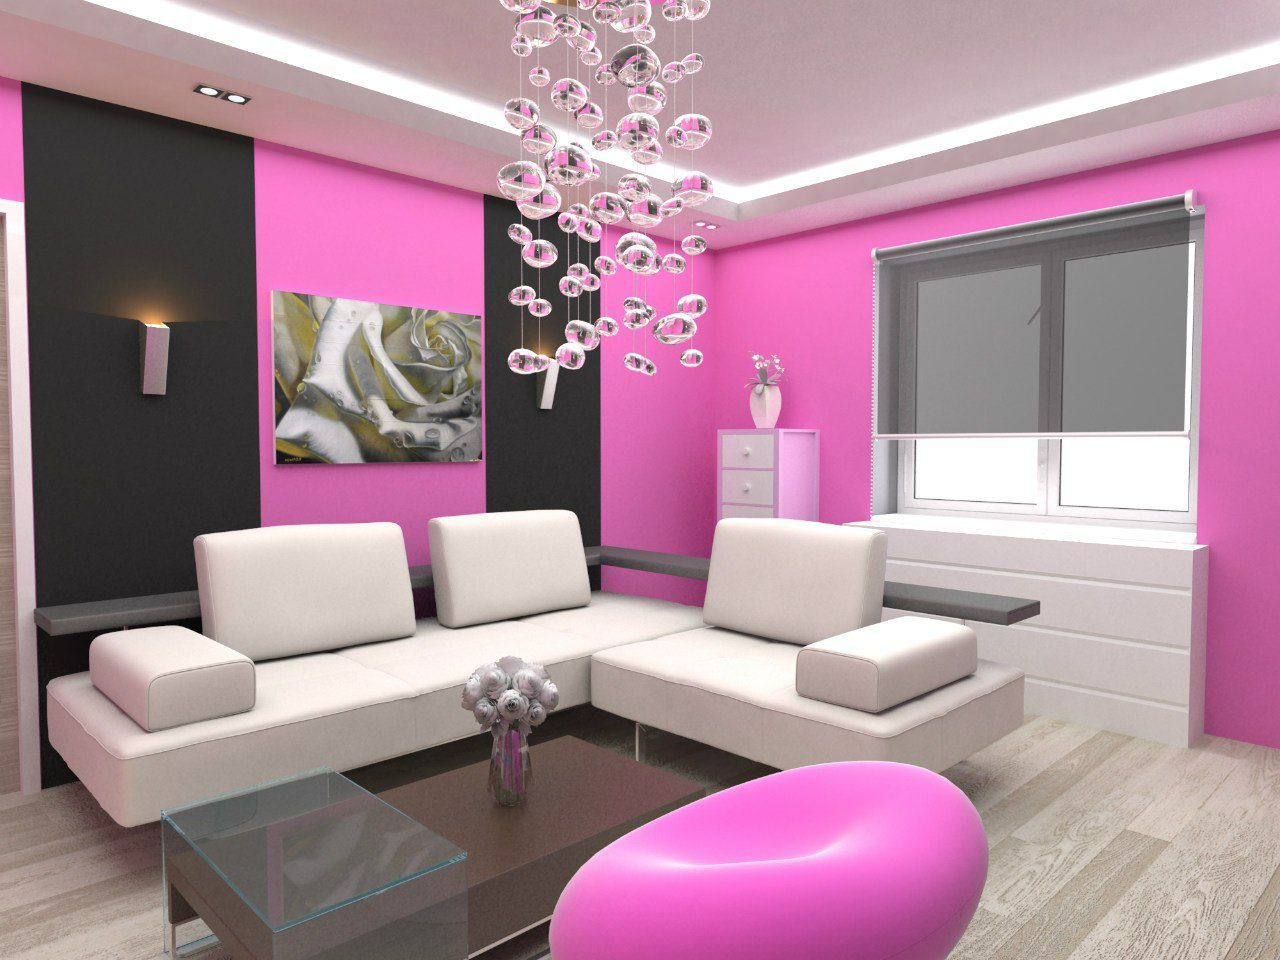 Paint Decorating For Living Rooms Pretty Living Room Paint Idea With Pink And Black Painted Wall And